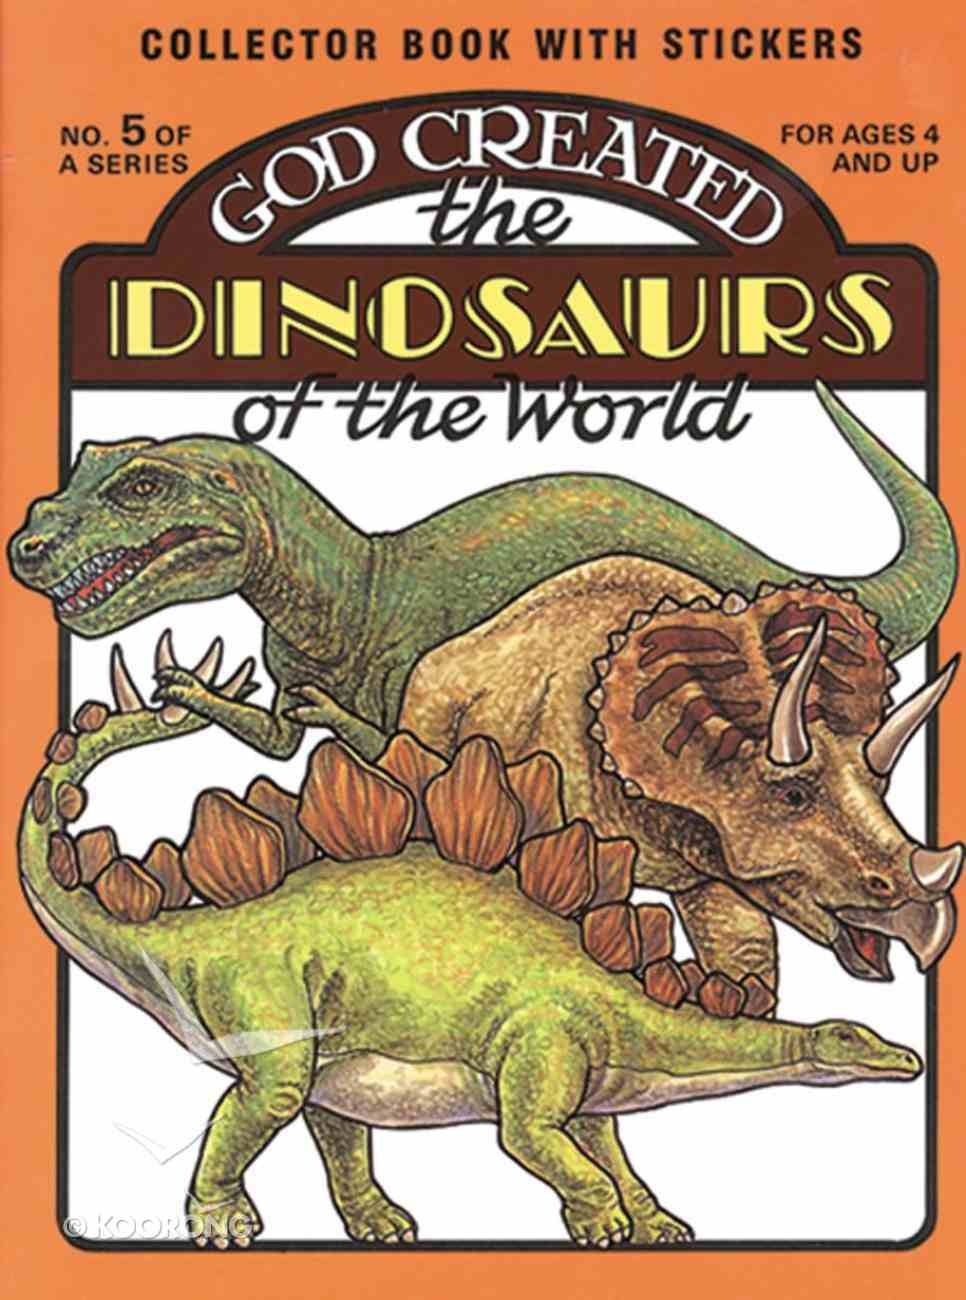 God Created the Dinosaurs of the World Paperback